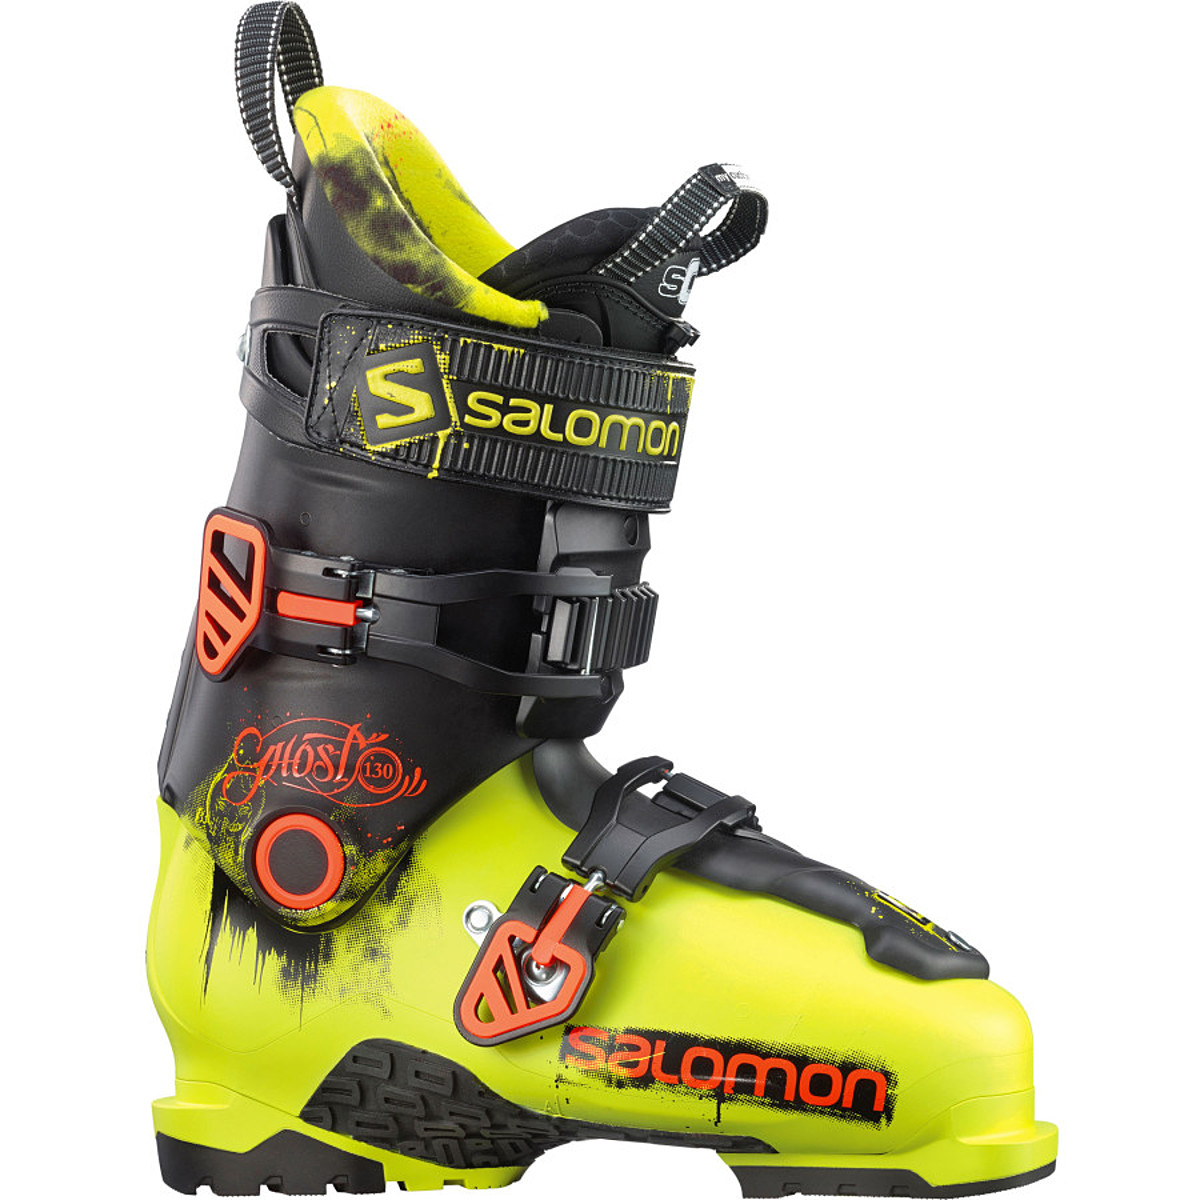 Salomon Ghost 130